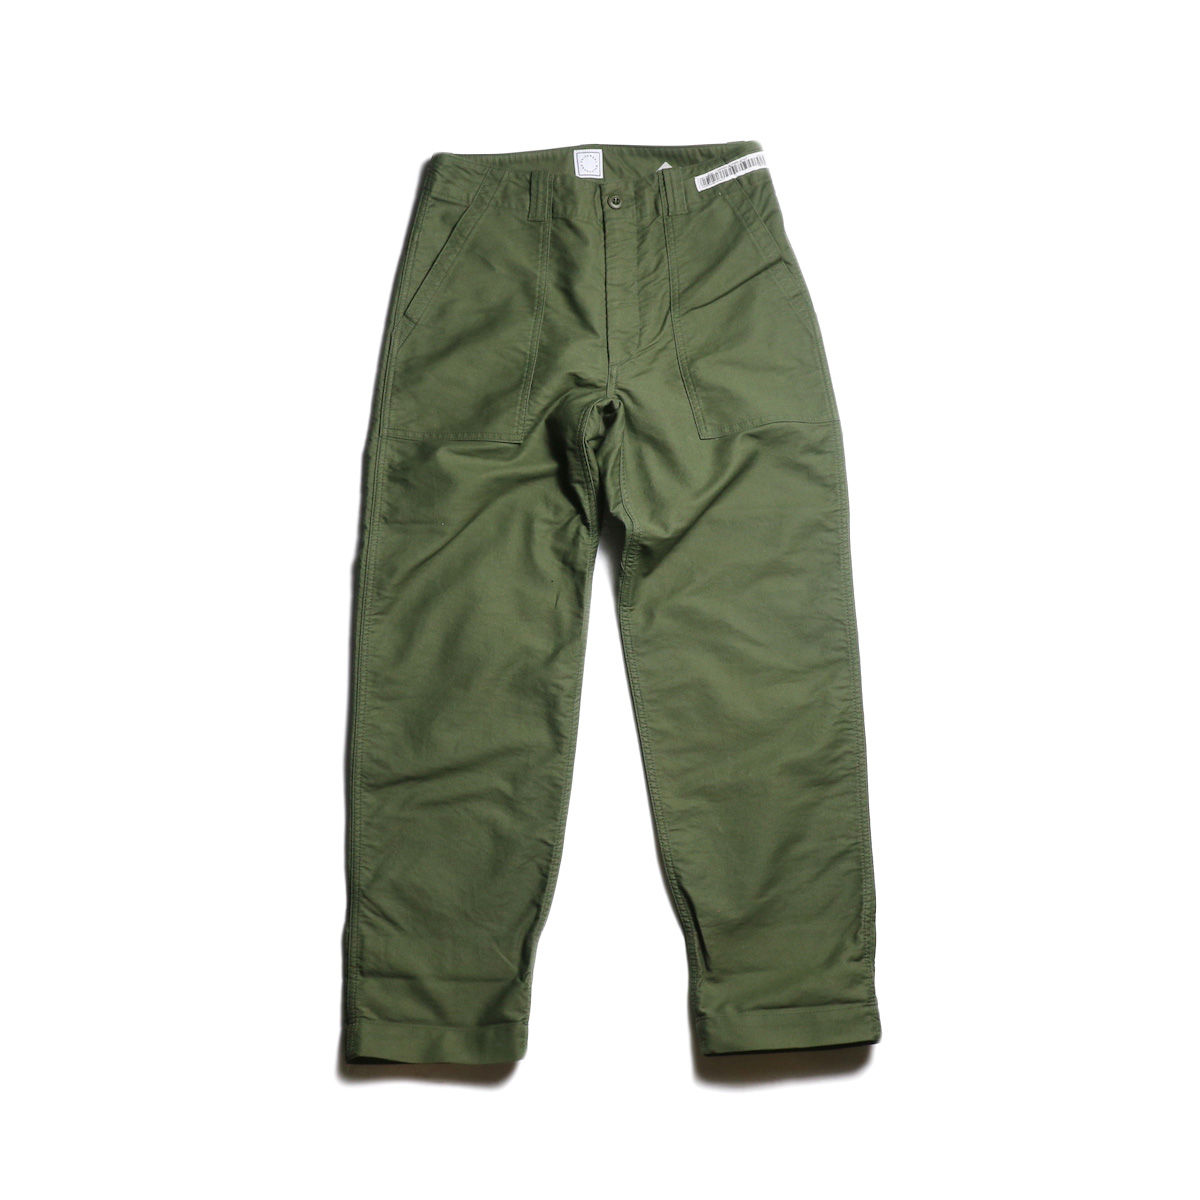 UNIVERSAL PRODUCTS / ORIGINAL FATIGUE PANTS (Olive)